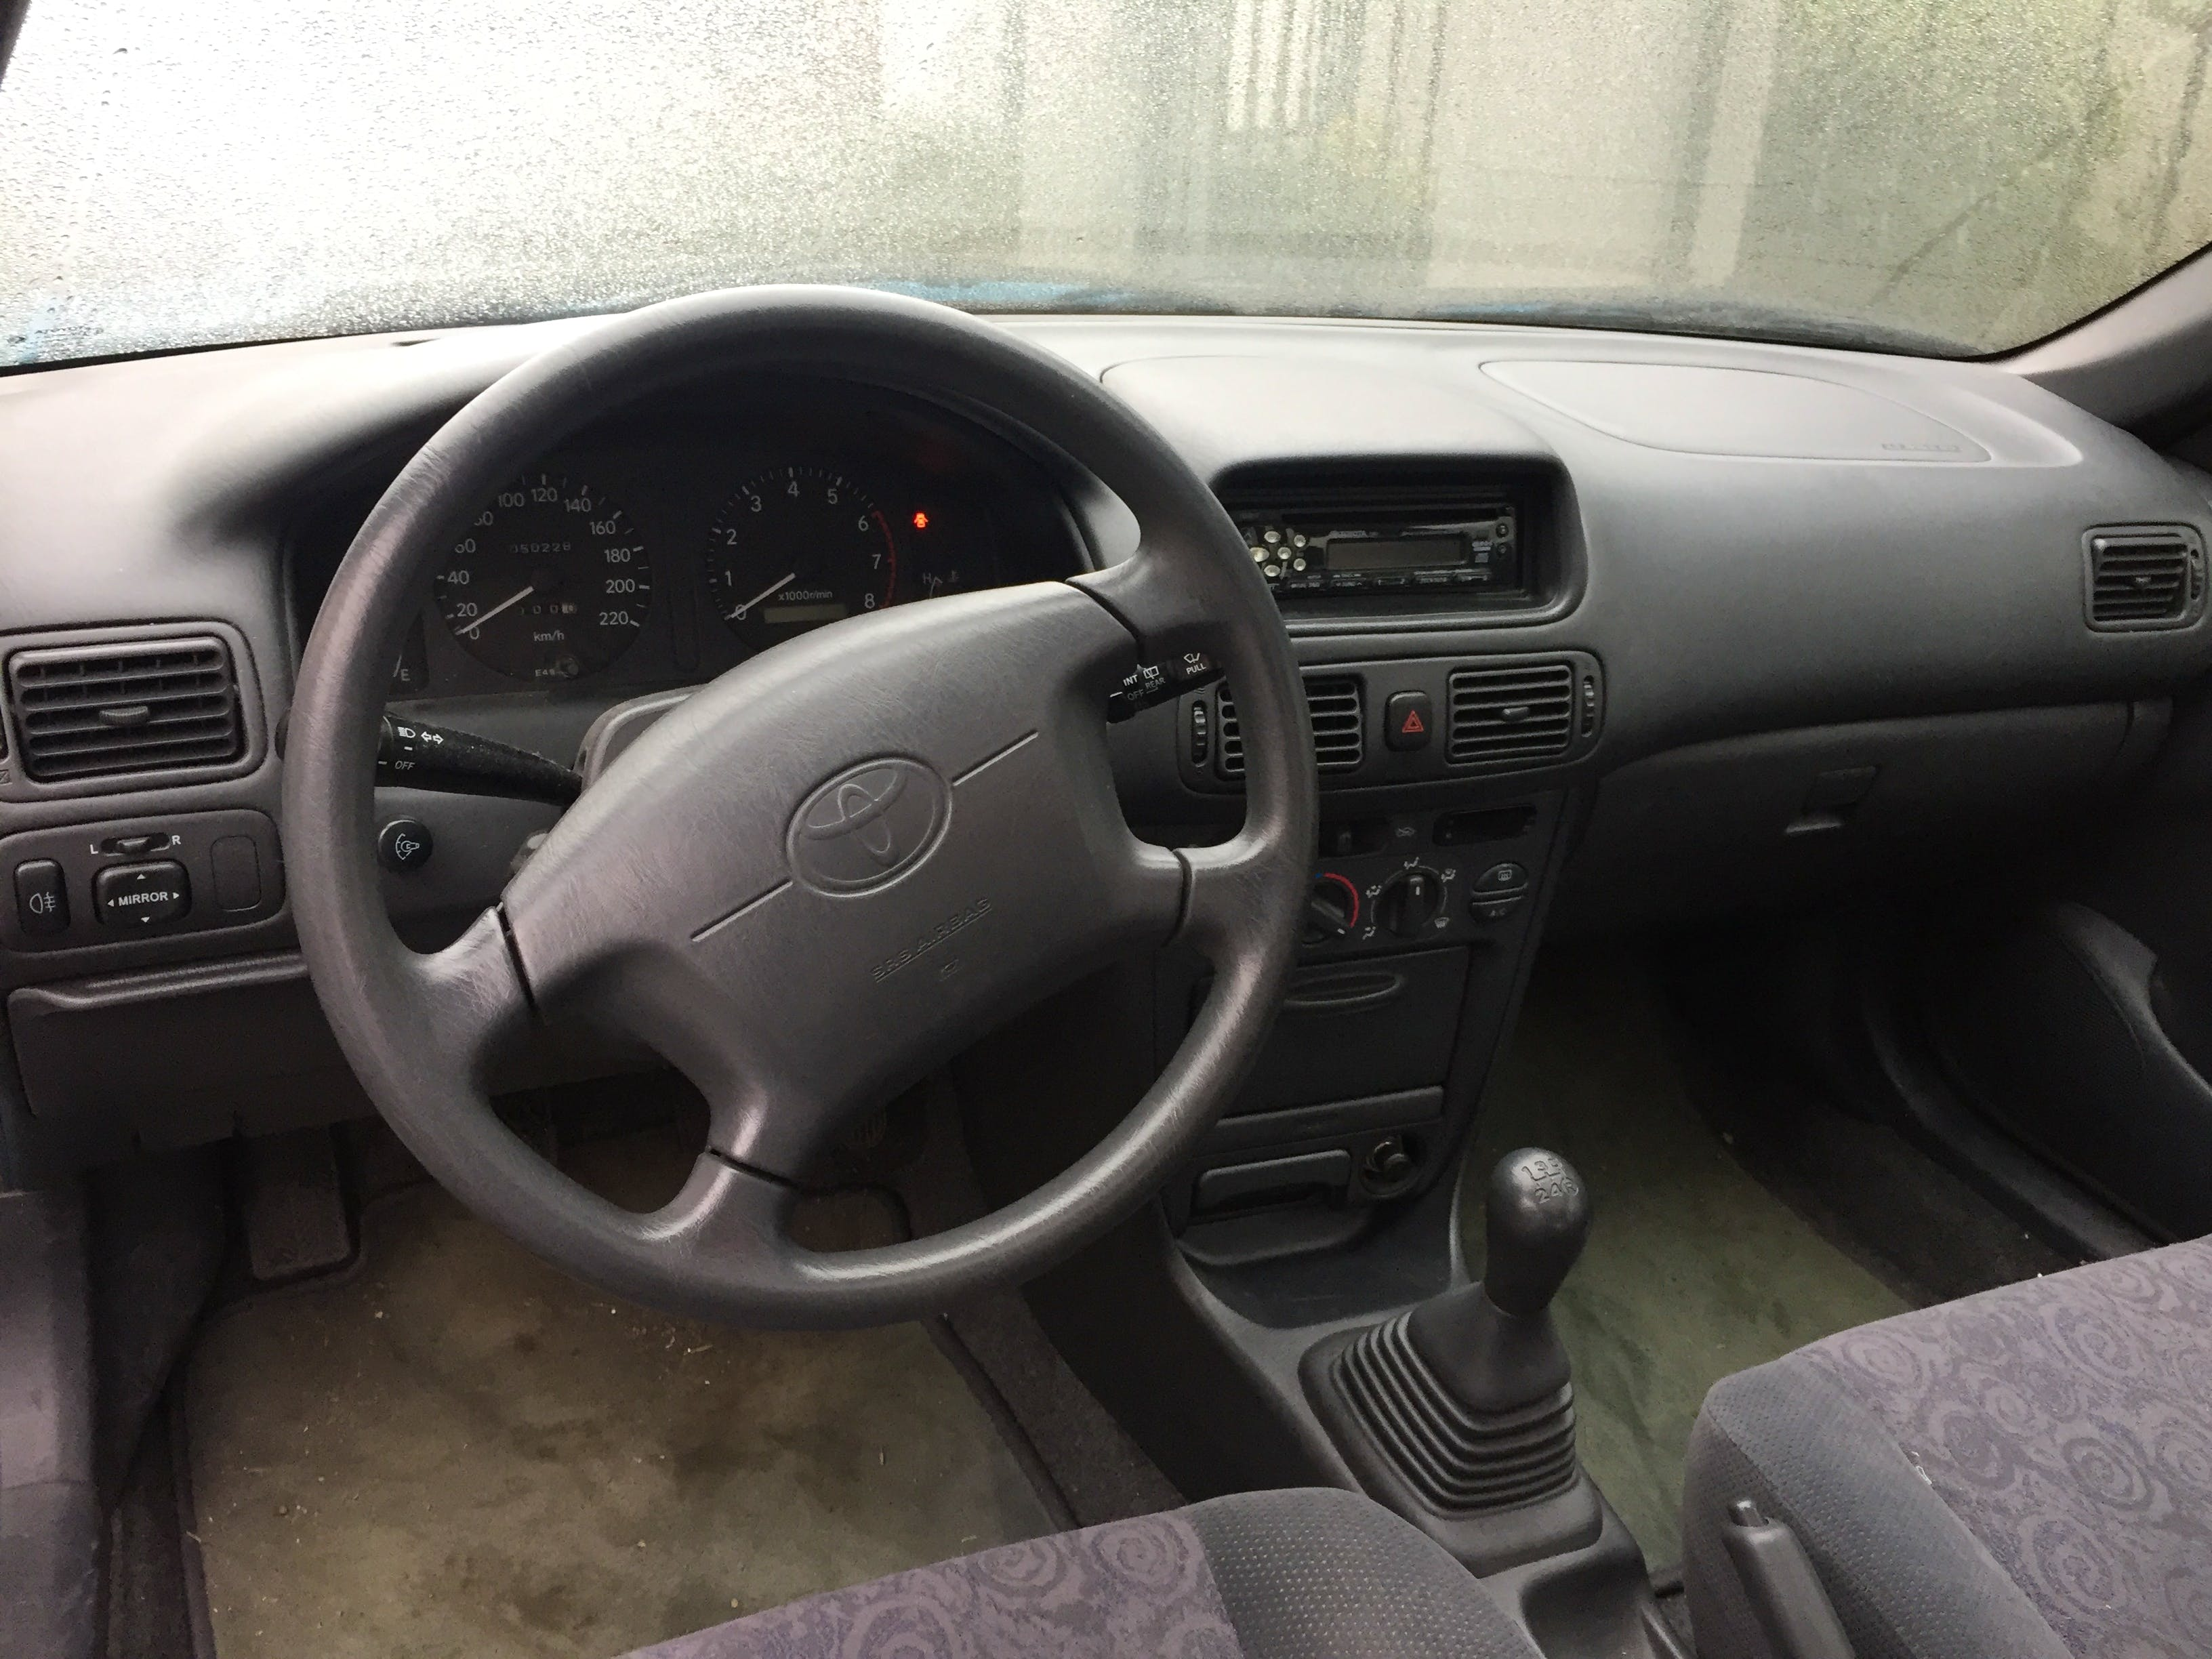 Toyota Corolla mit CD-Player